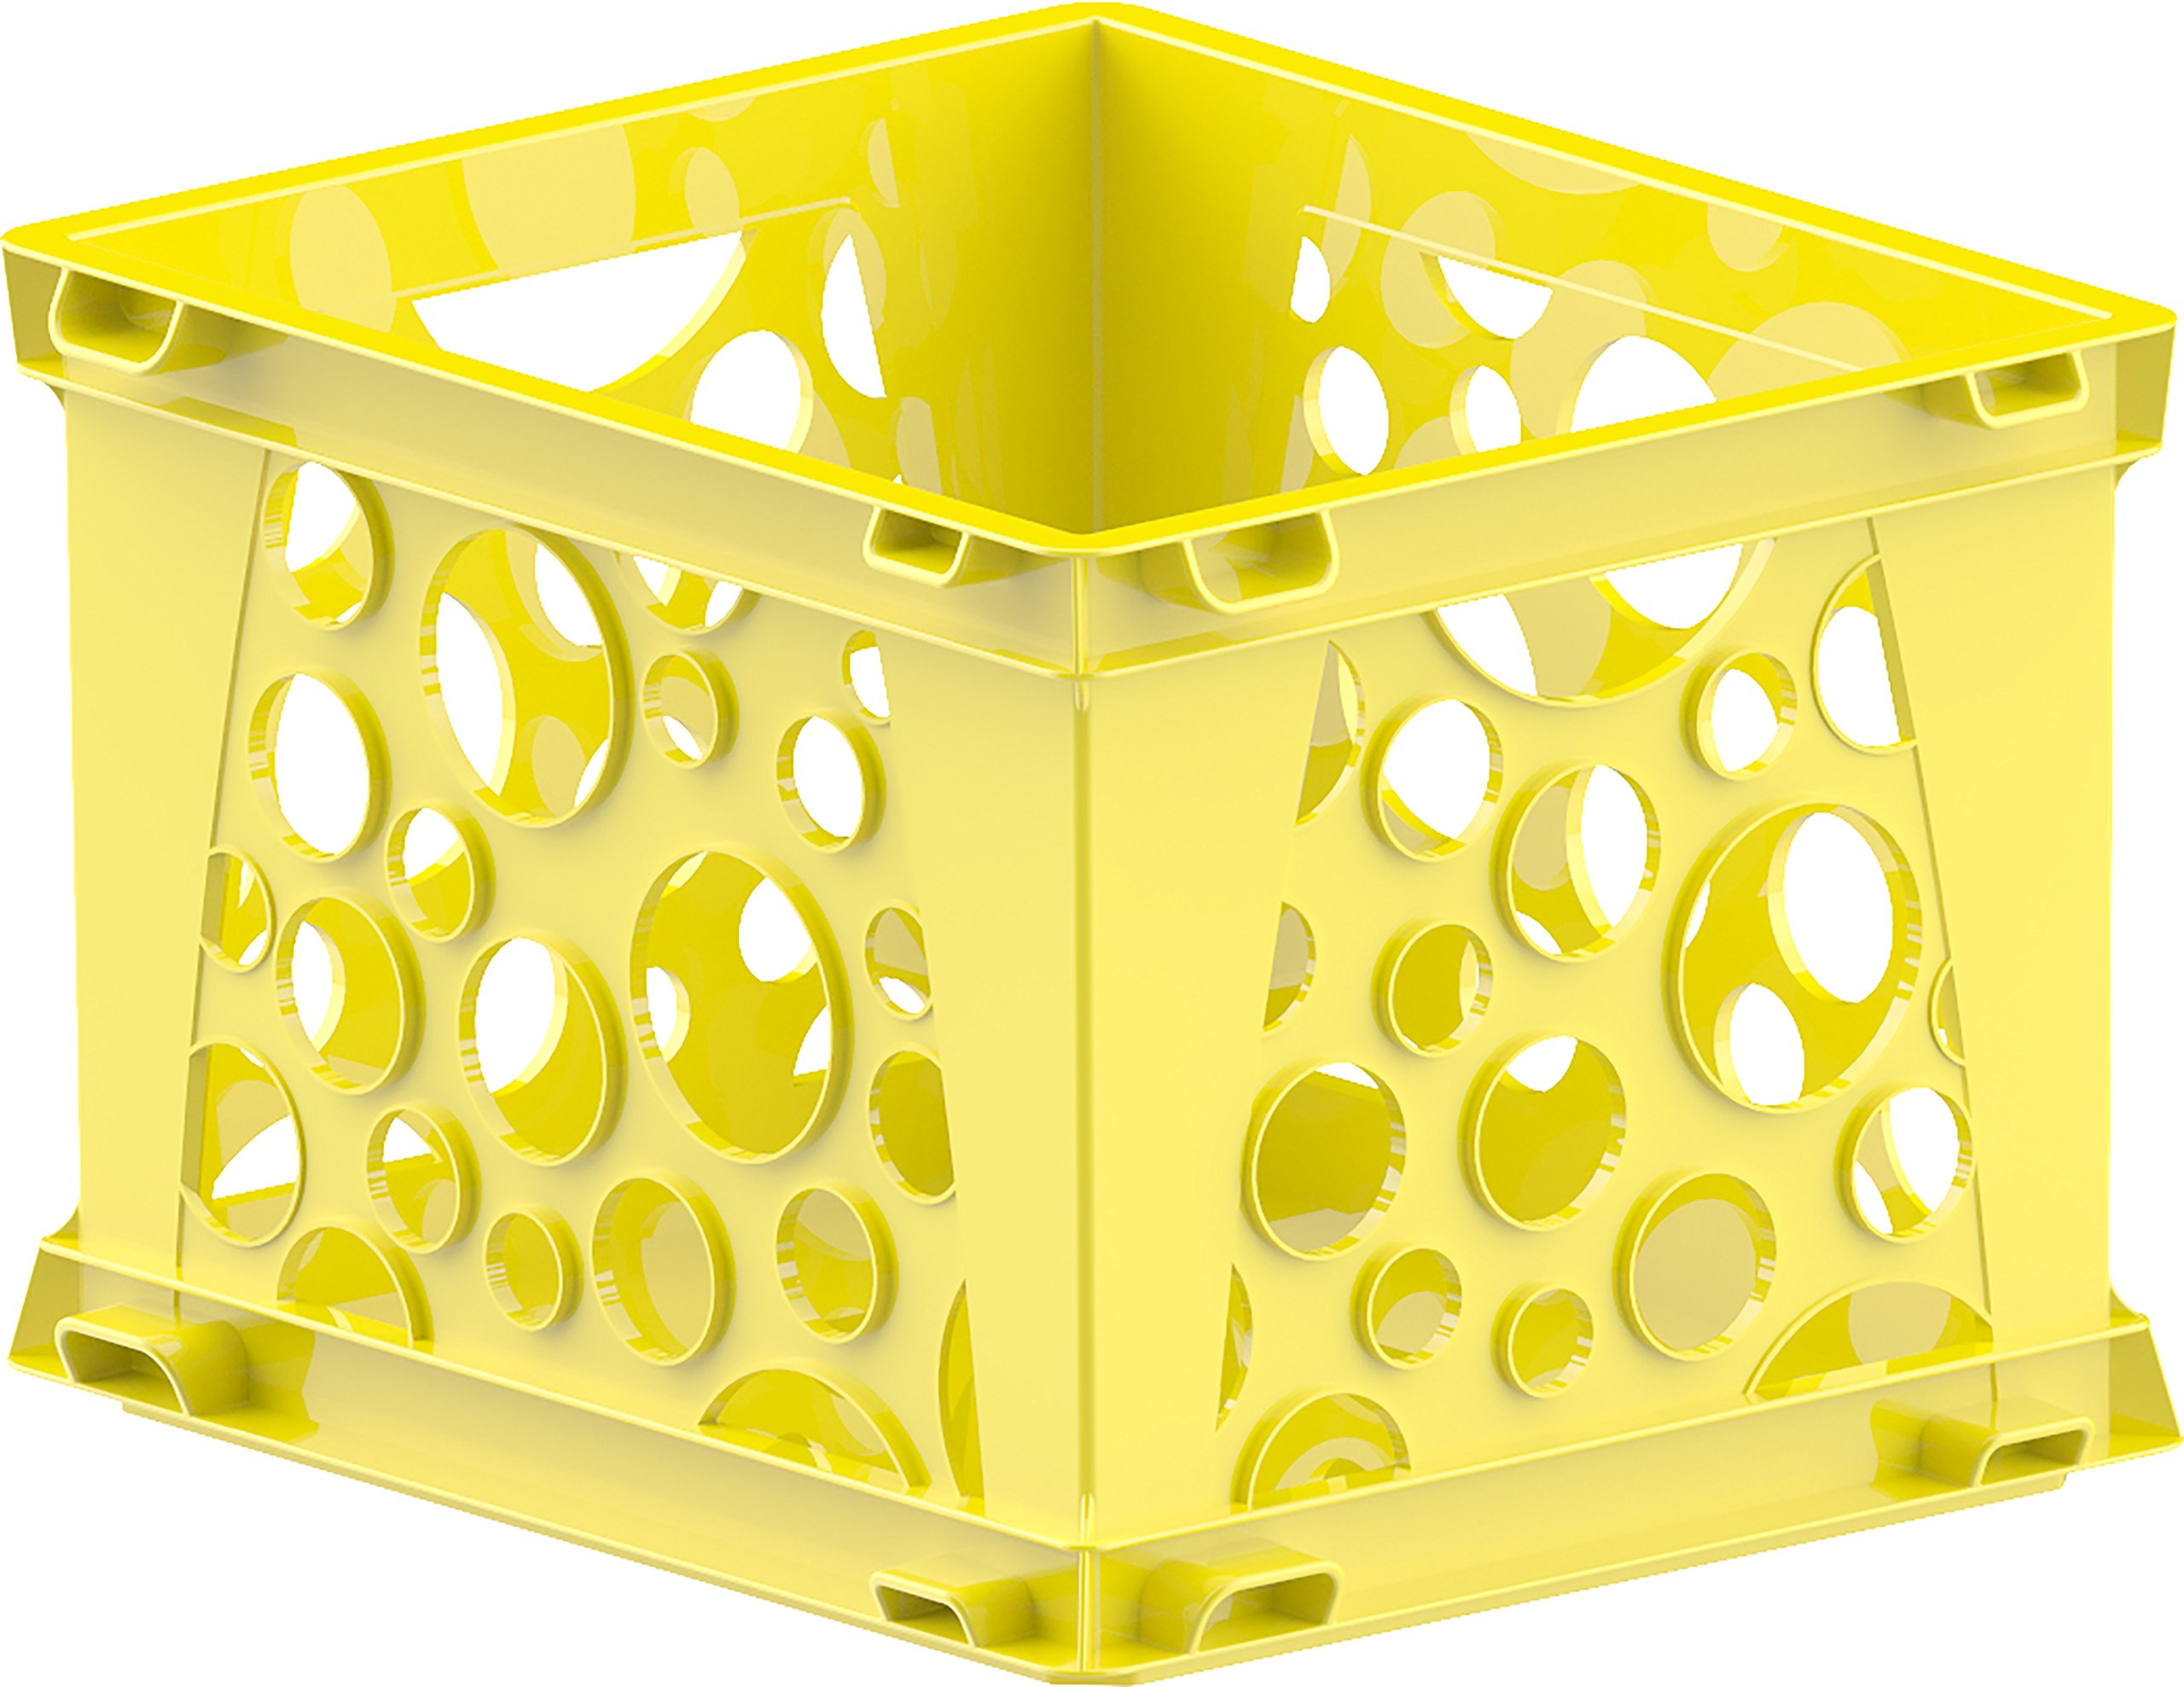 Storex Large File Crate, 17.25 x 14.25 x 10.5, Classroom Yellow, Case of 3 (61462U03C)